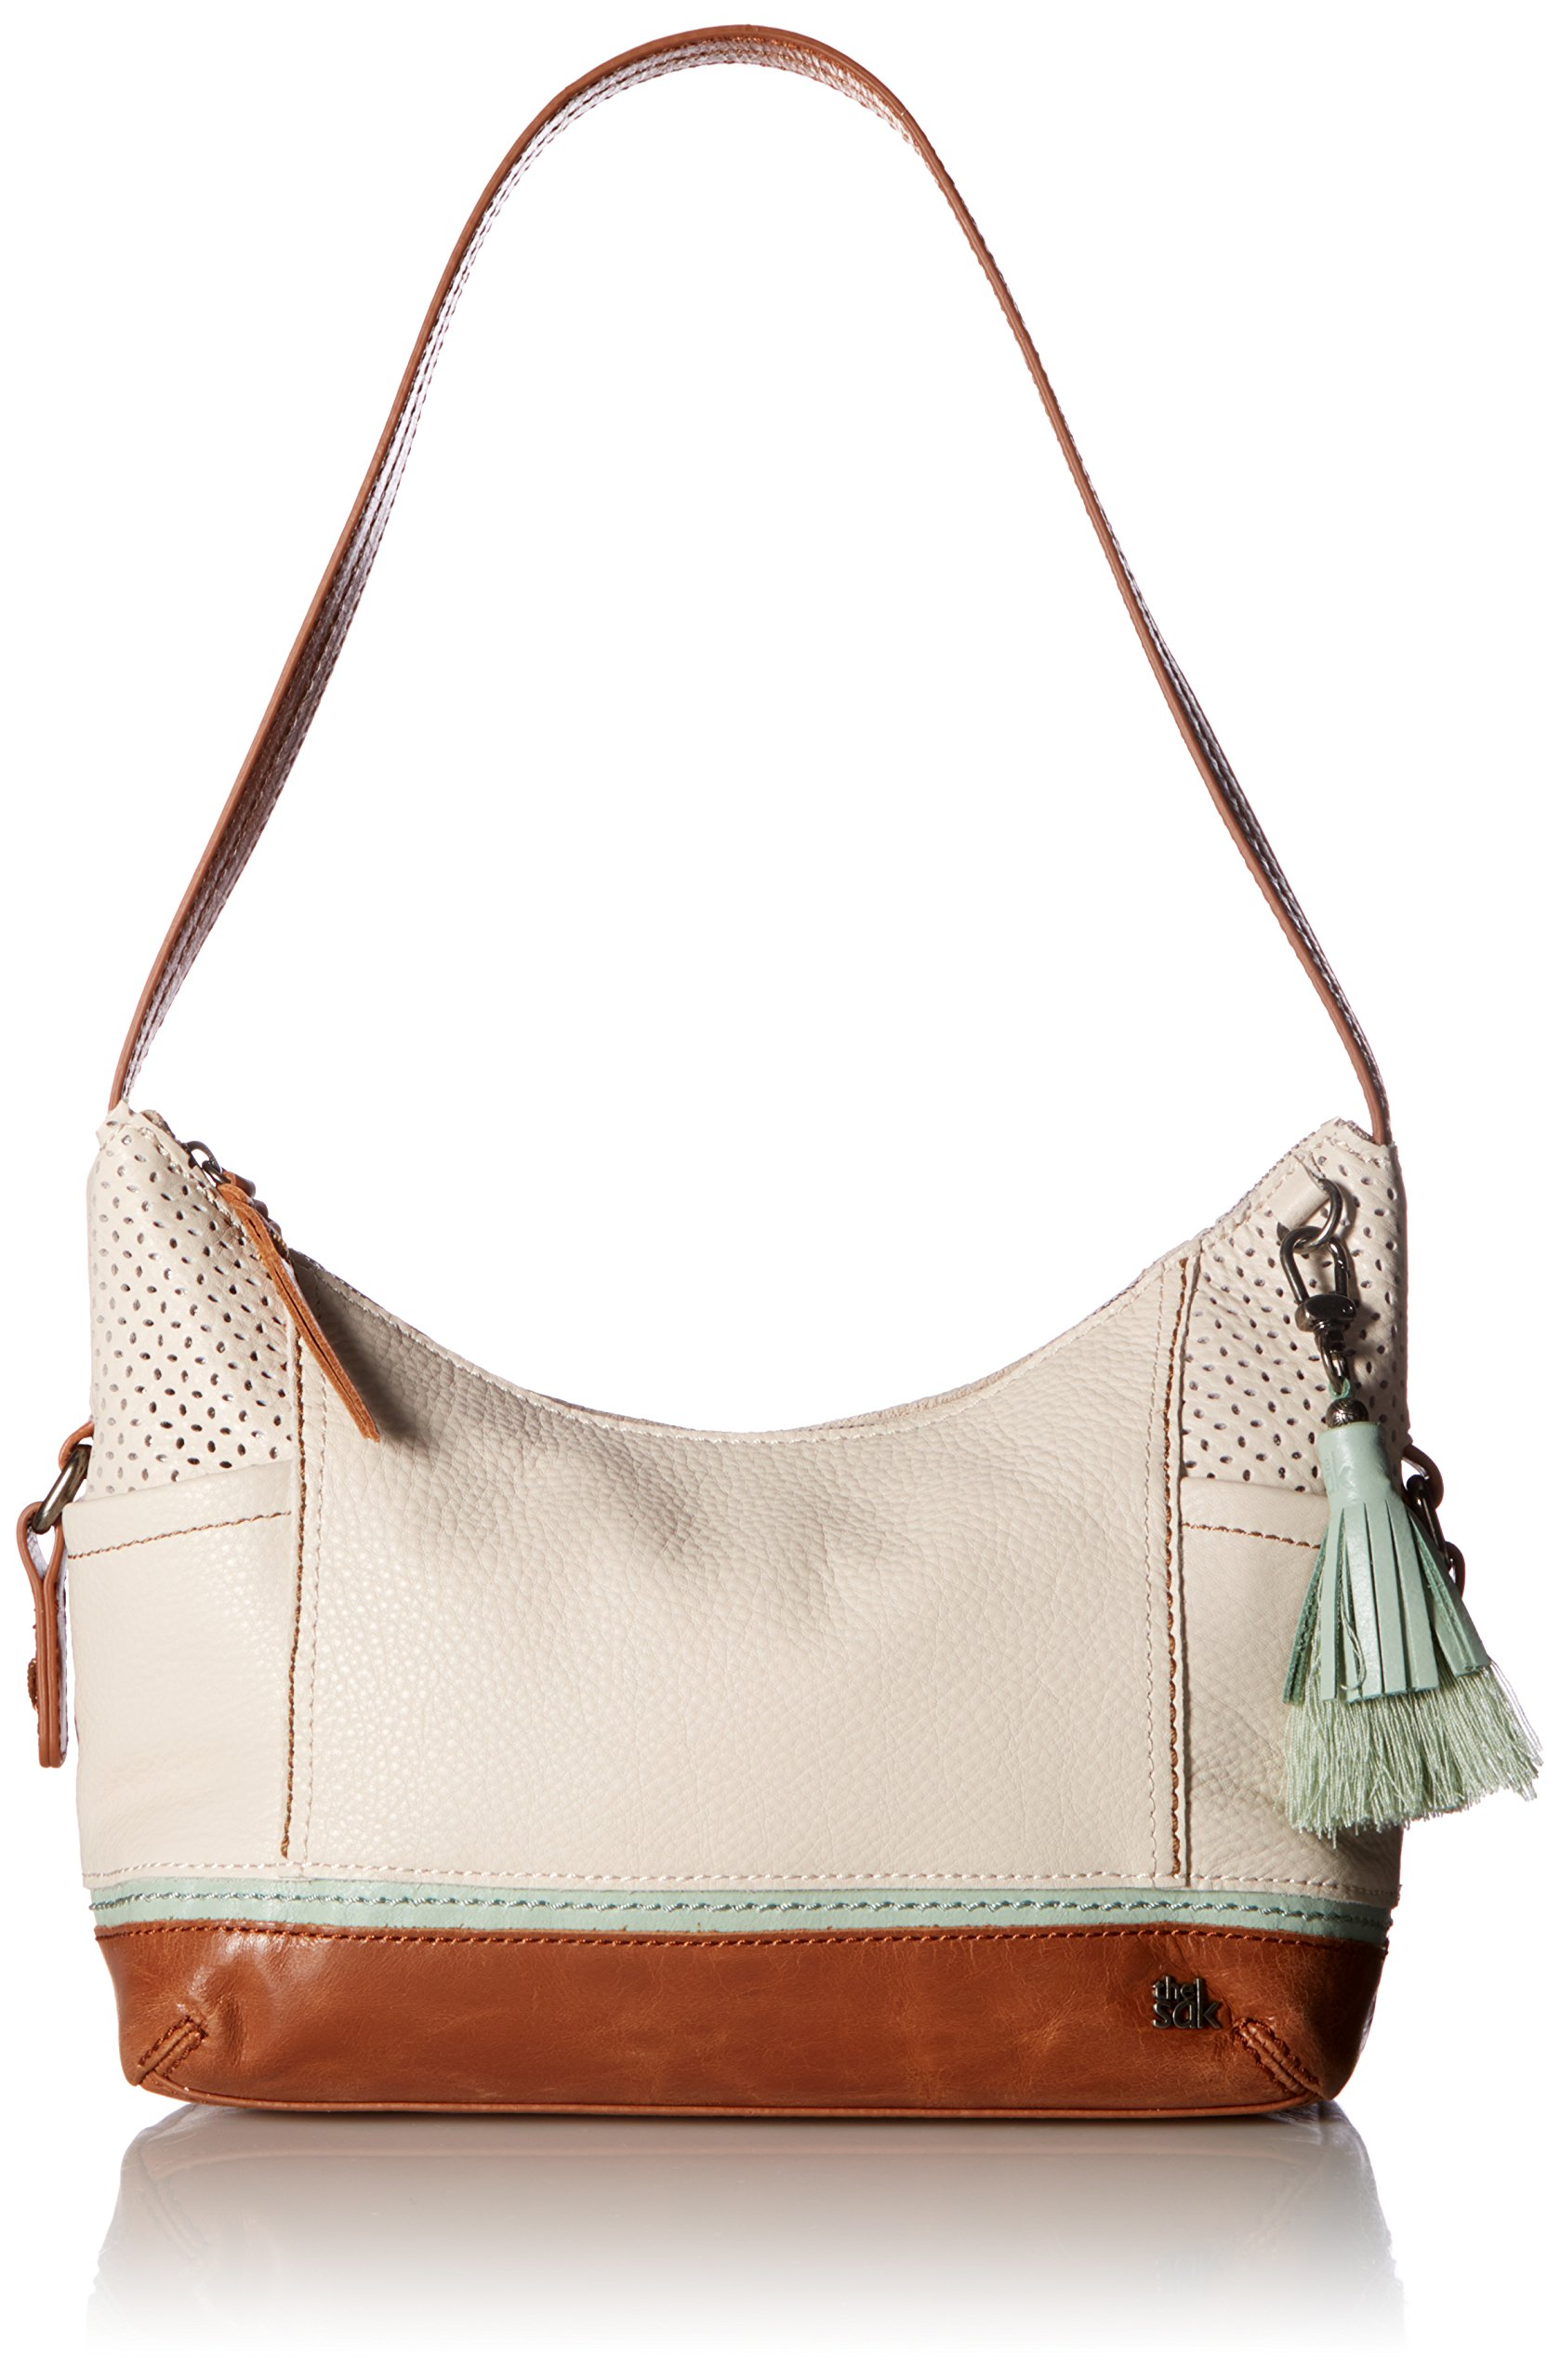 The Sak Kendra Hobo Shoulder Bag,Stone Canyon Perf,One Size